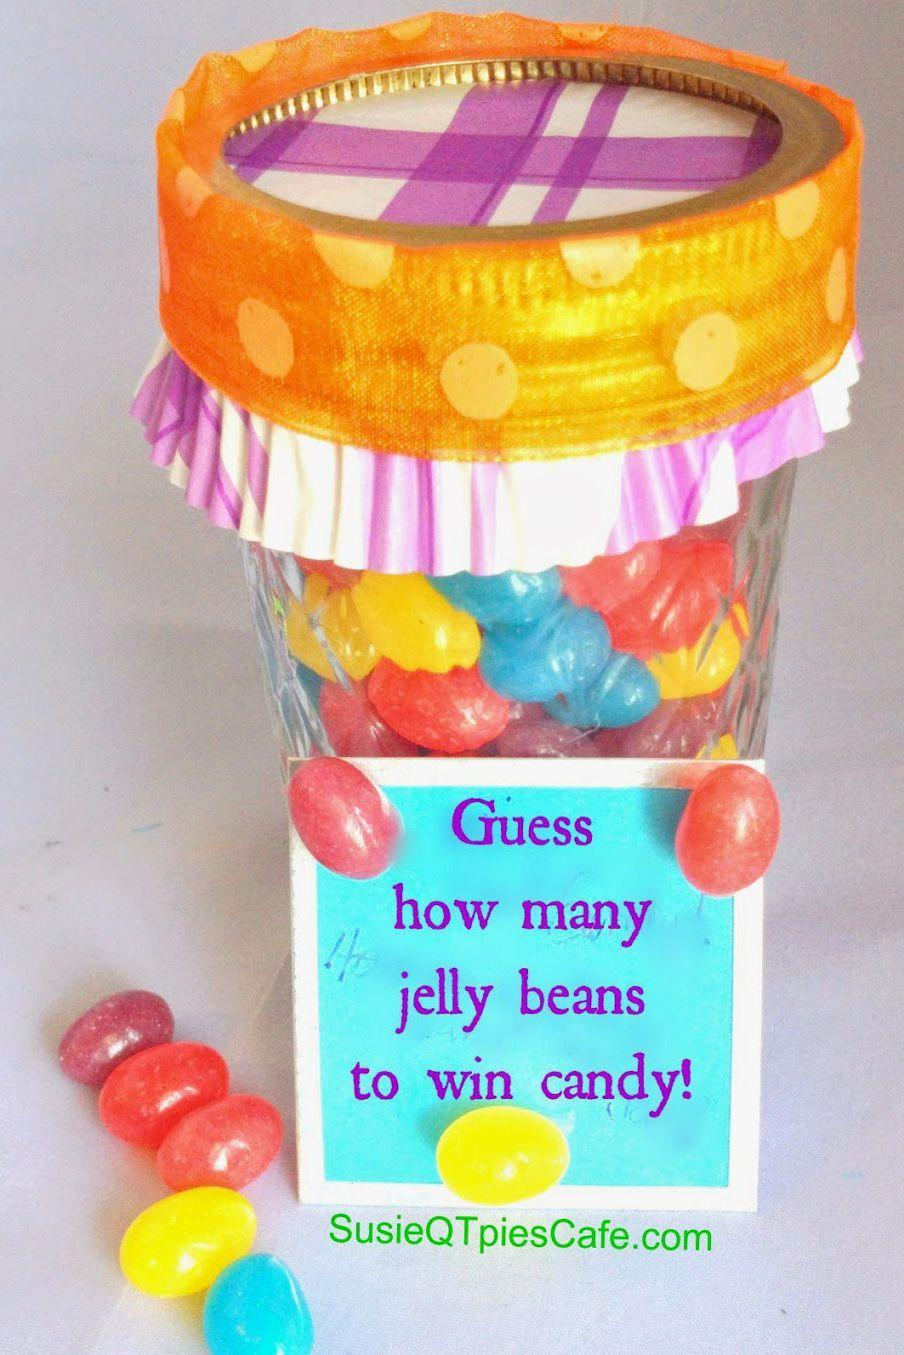 """<p>Get the whole family in on this classic counting game and give a special prize to the lucky winner.<br></p><p><em>Get the tutorial at <a href=""""http://www.susieqtpiescafe.com/2014/03/Bunny-Trail-Easter-Games-Easter-Recipes.html#_a5y_p=1456805"""" rel=""""nofollow noopener"""" target=""""_blank"""" data-ylk=""""slk:SusieQTpies"""" class=""""link rapid-noclick-resp"""">SusieQTpies</a>.</em></p>"""